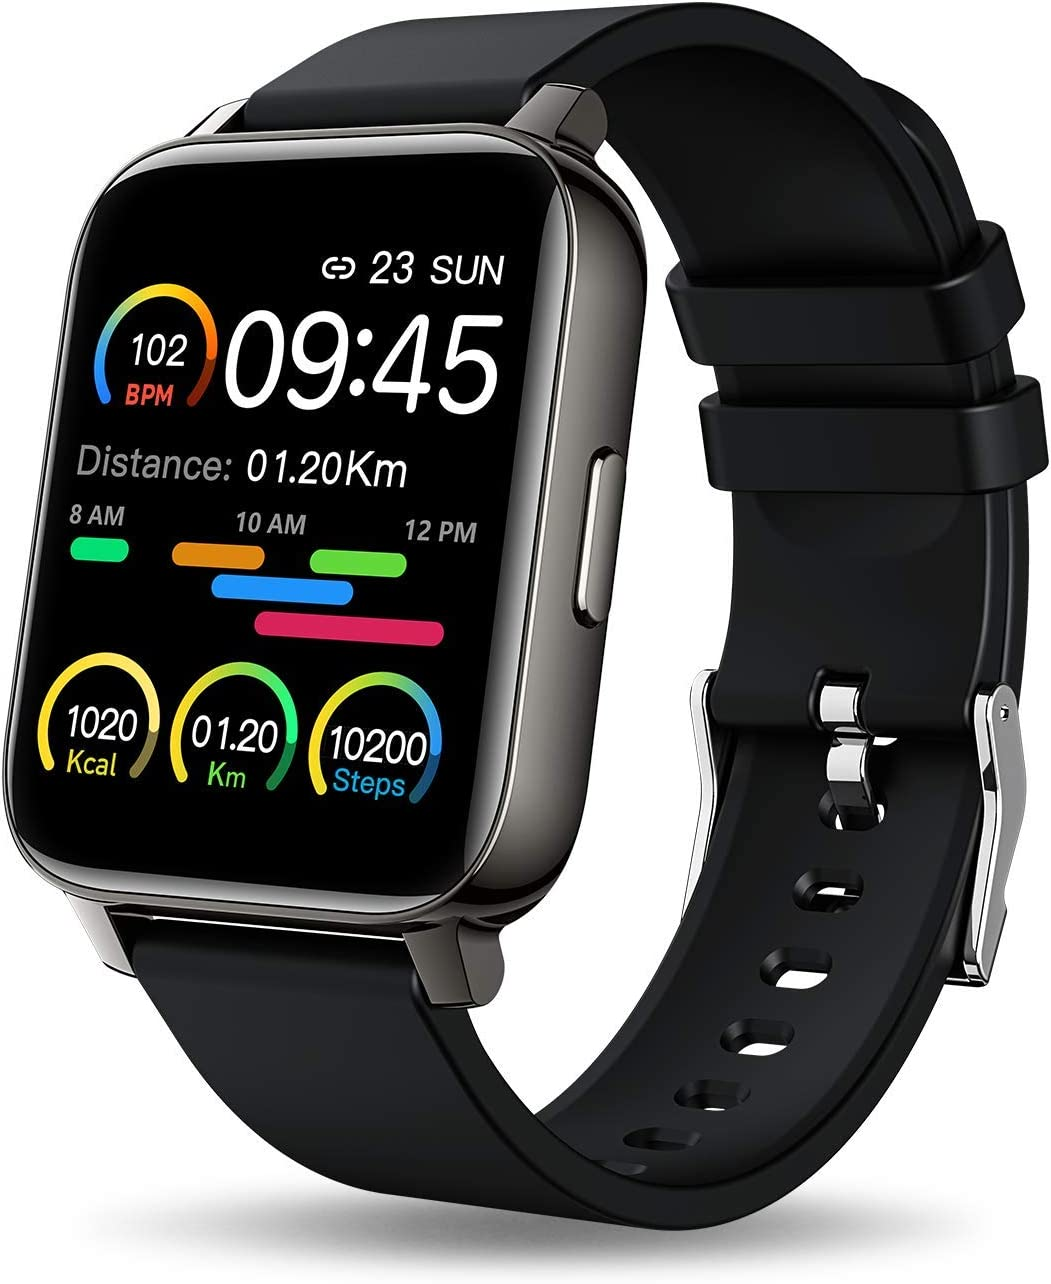 MuGo Smart Watch, 1.69 inch Fitness Tracker, Smartwatch with Heart Rate/Sleep Monitor, Calorie/Step Counter Activity Tracker, Stopwatch, Blood Oxygen Monitor, Full Touch Fitness Watch for Men Women